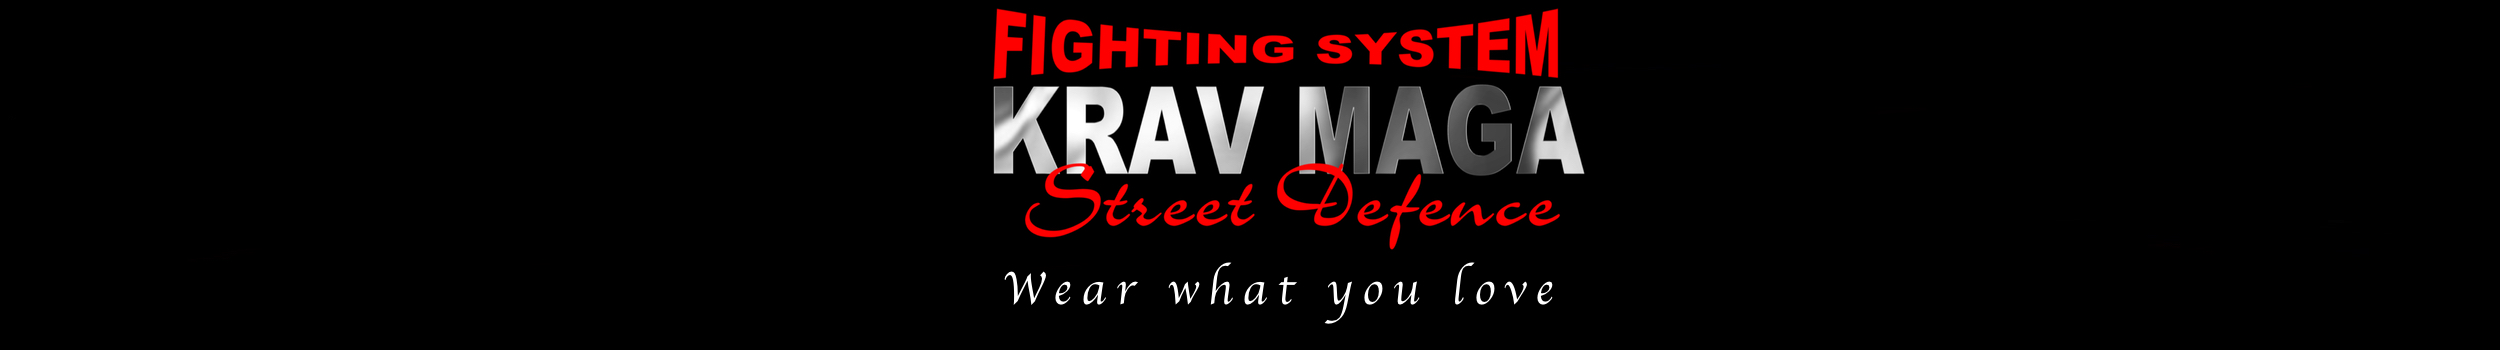 Krav Maga Street Defence Shop